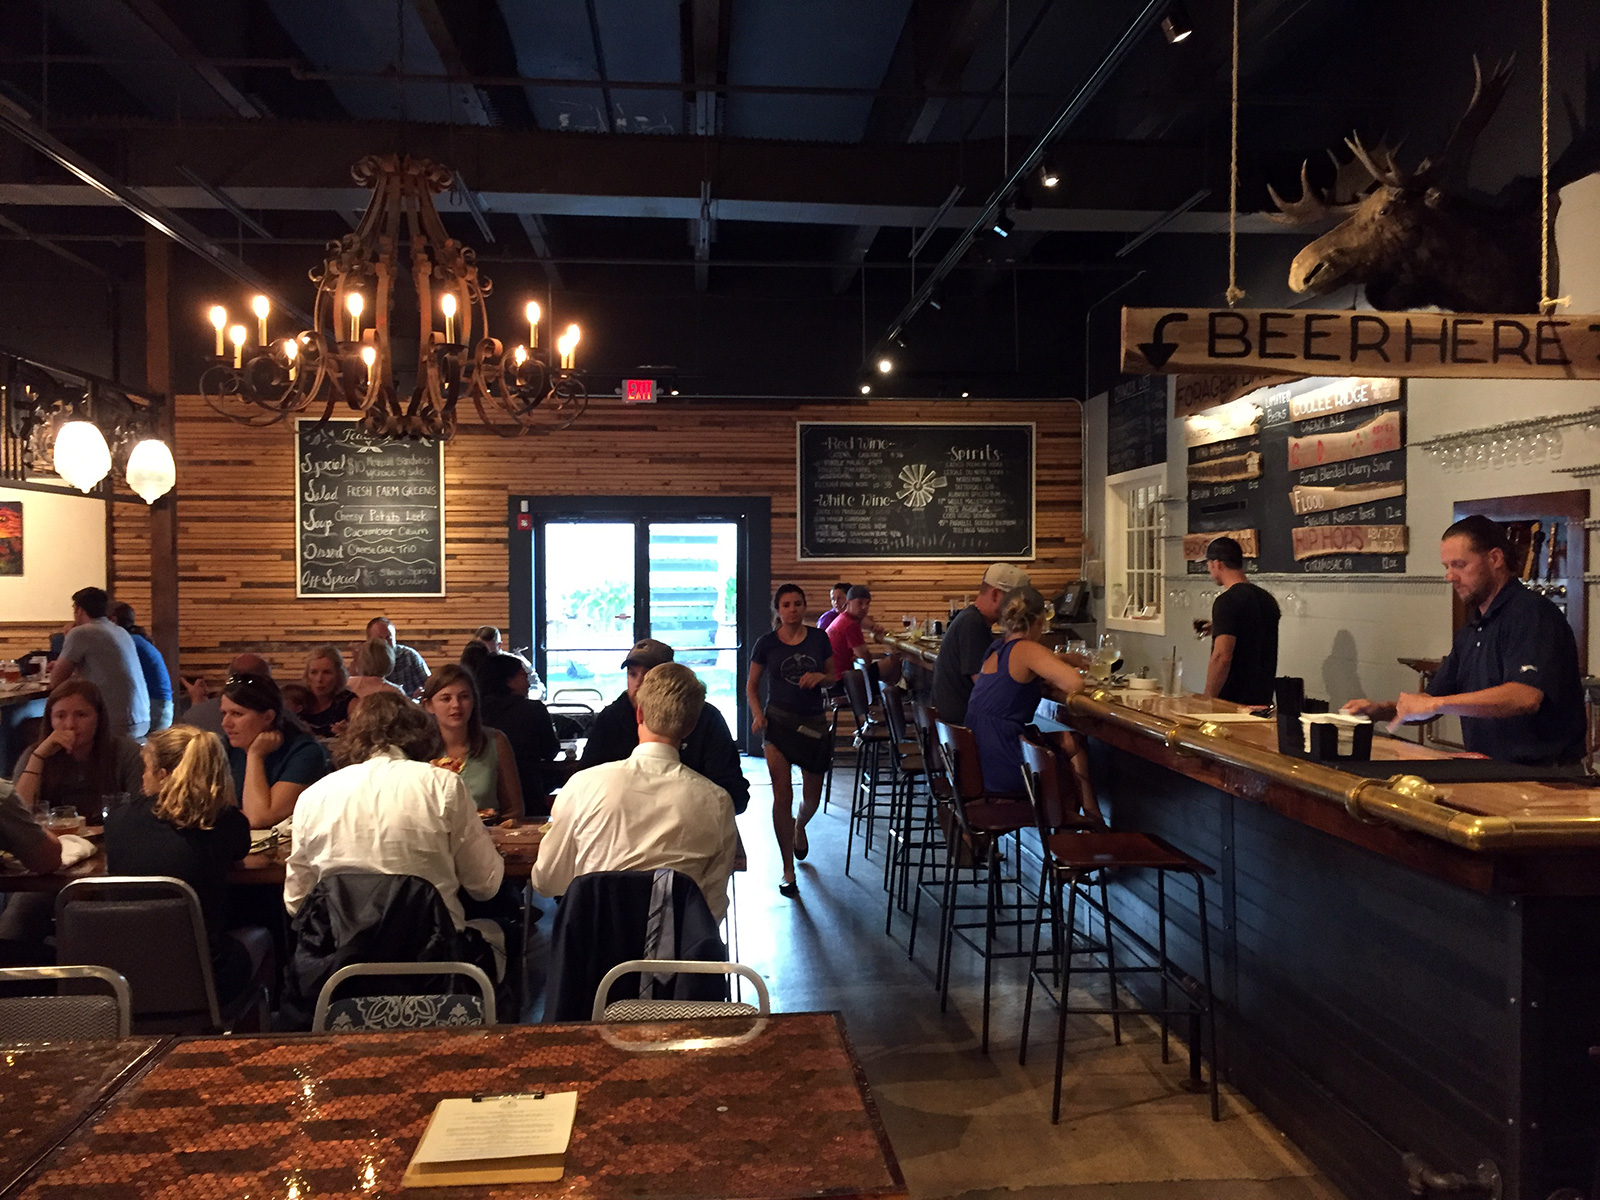 Forager Brewing Co. in Rochester, MN by Jets Like Taxis